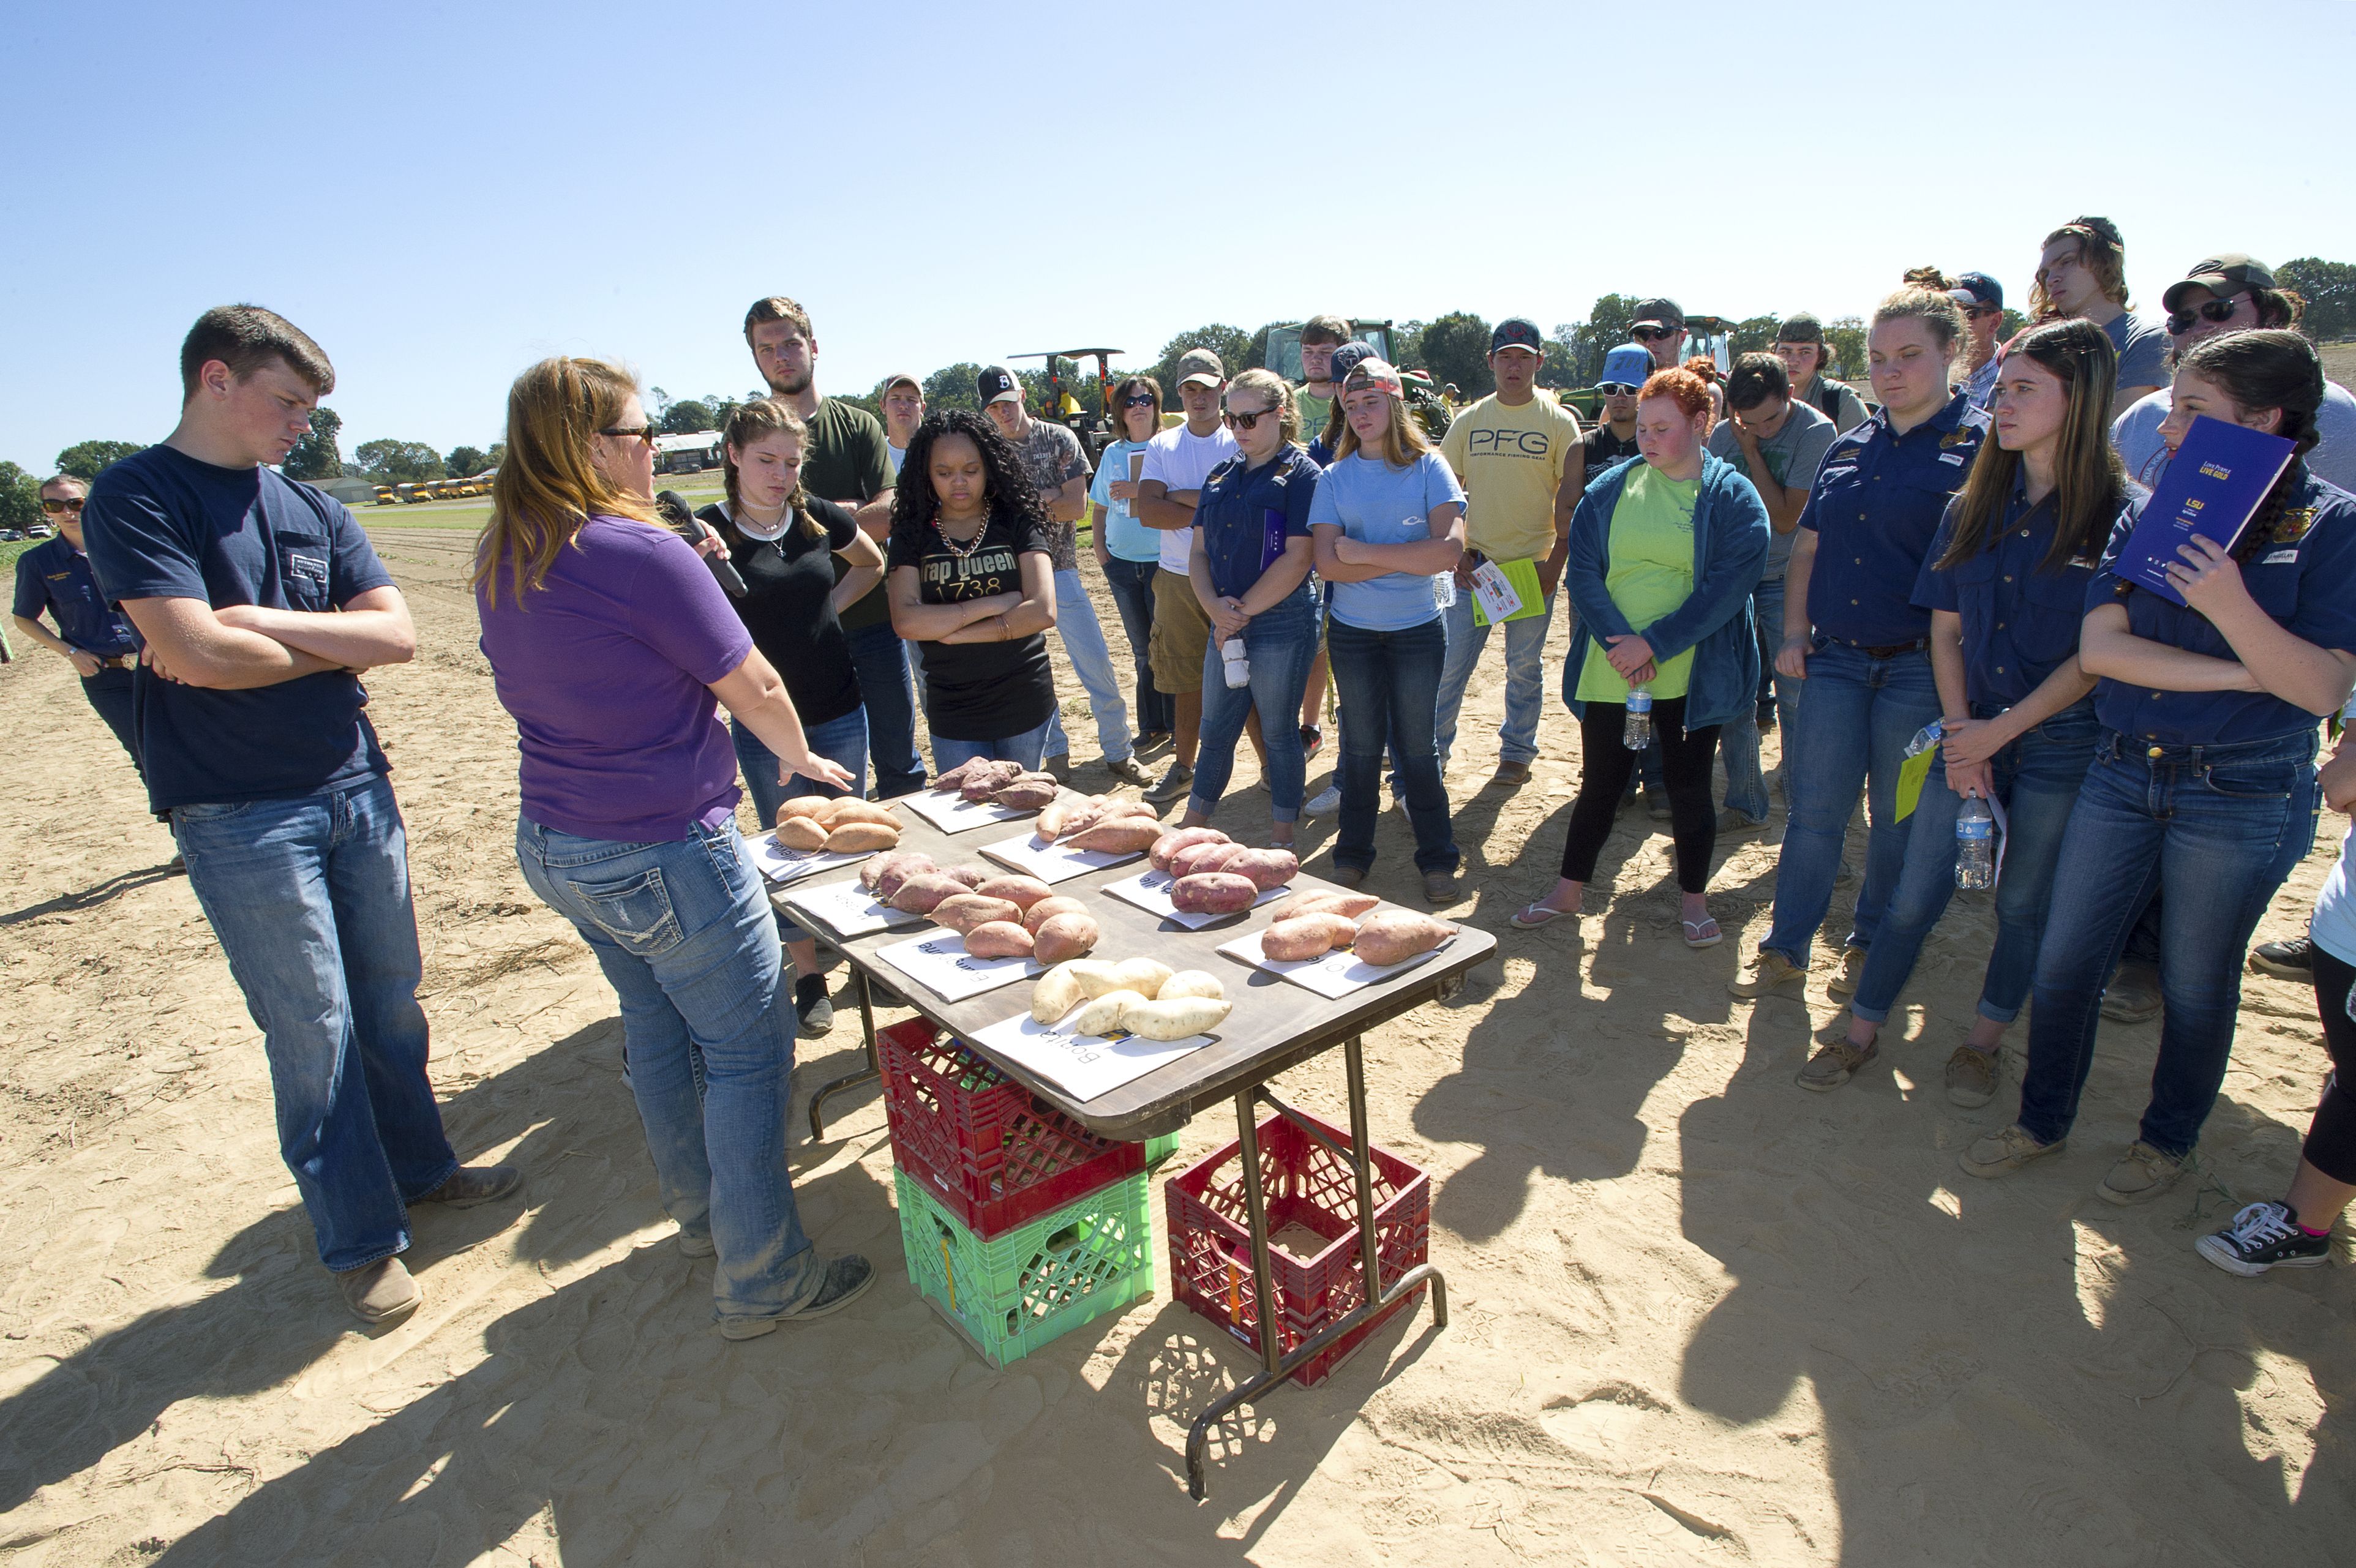 High school students hear about agriculture, careers at field day